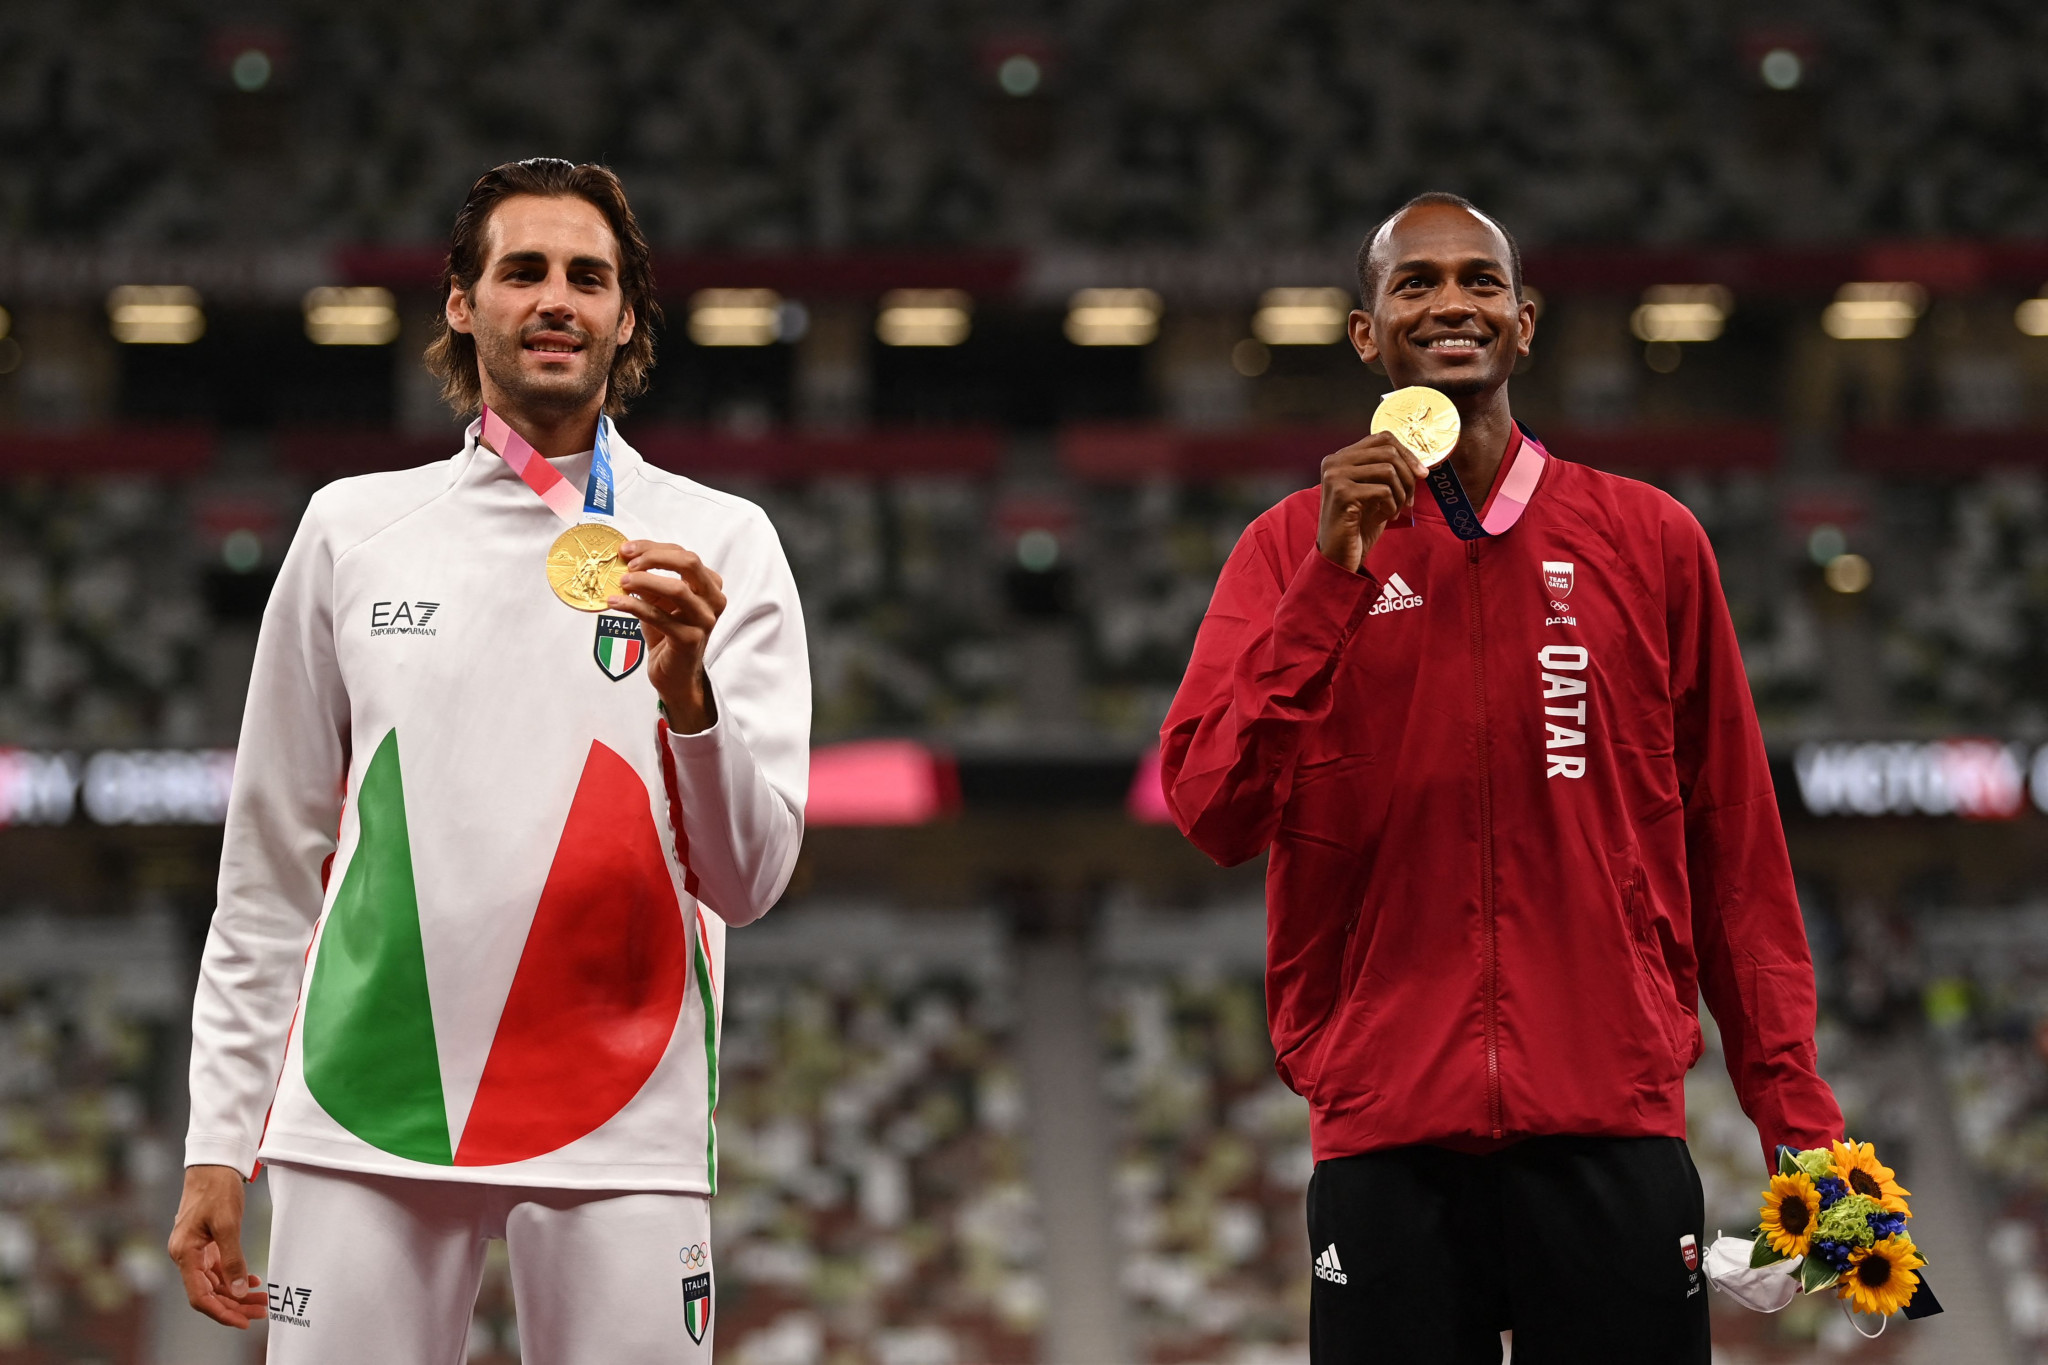 Gianmarco Tamberi, left, and Mutaz Barshim, right, share high jump gold at the Tokyo 2020 Olympics ©Getty Images